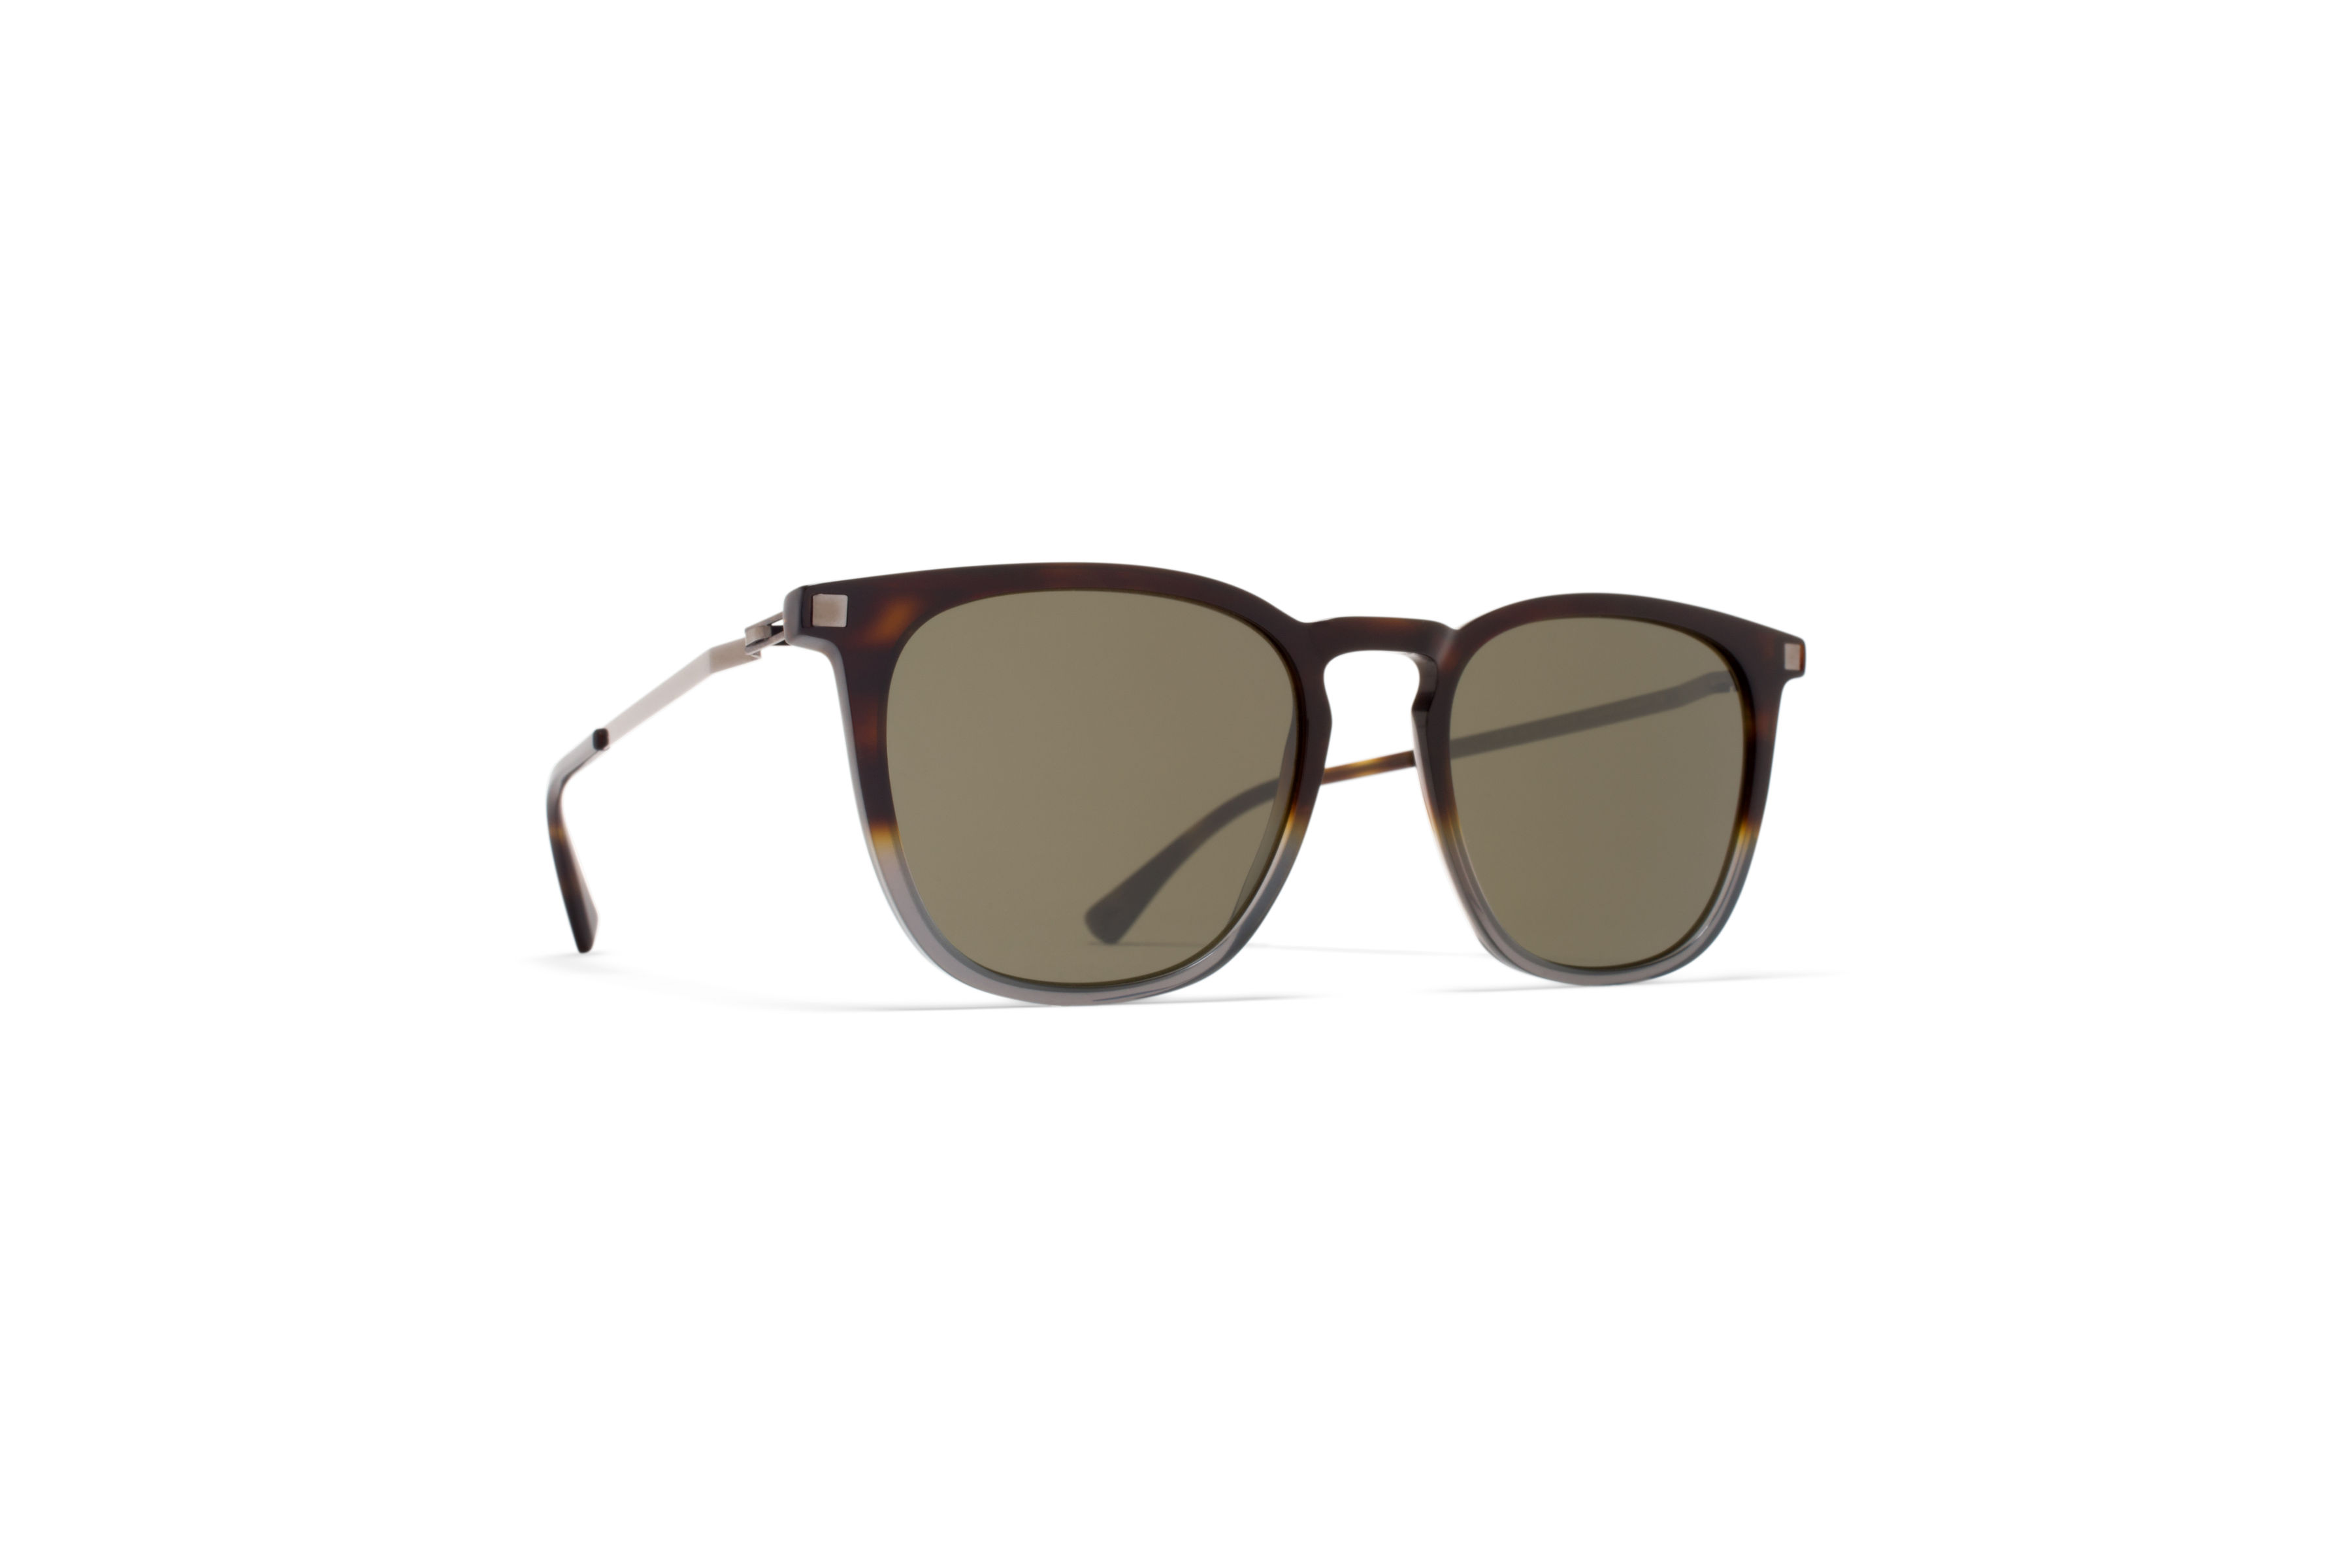 Korean Glass Frames | Mykita Glasses | Mykita Glasses Price